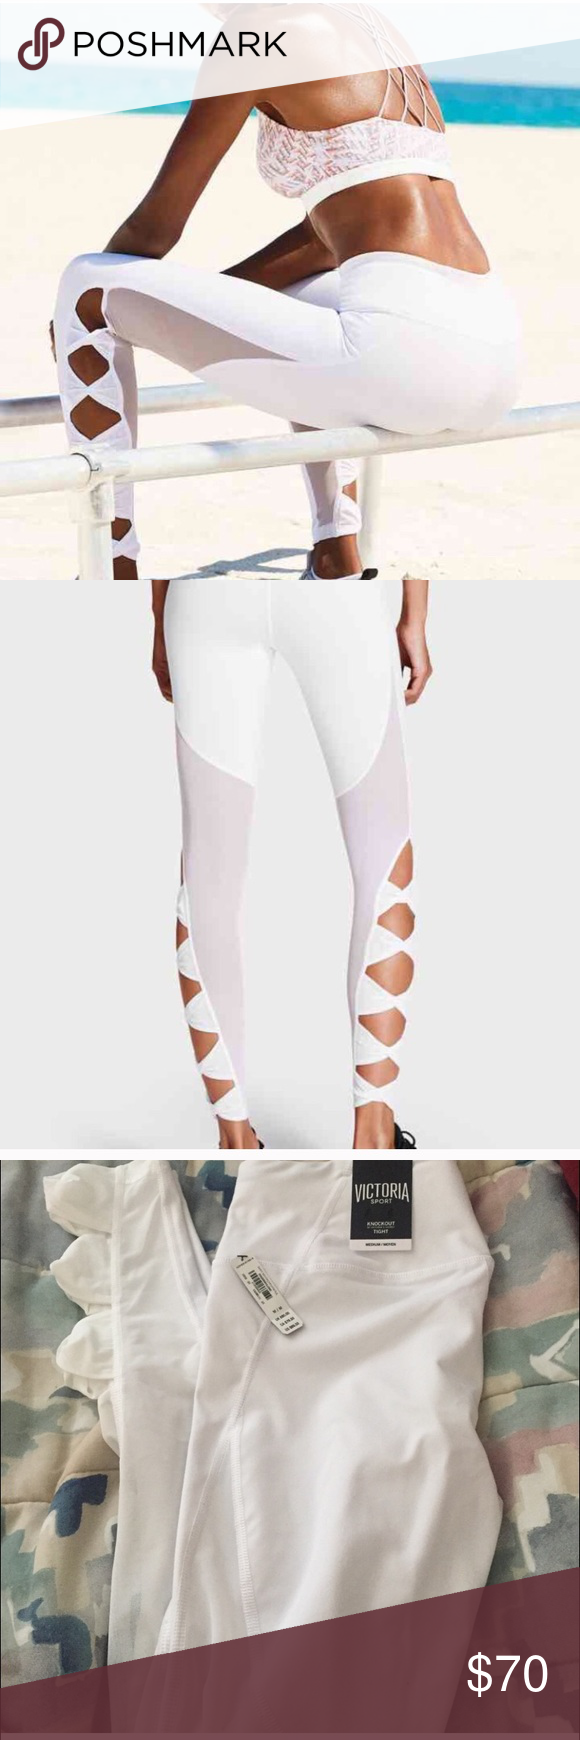 bf241fea744784 Victoria's Secret knockout mesh tie knot leggings Size medium. BNWT brand  new with tags Victoria